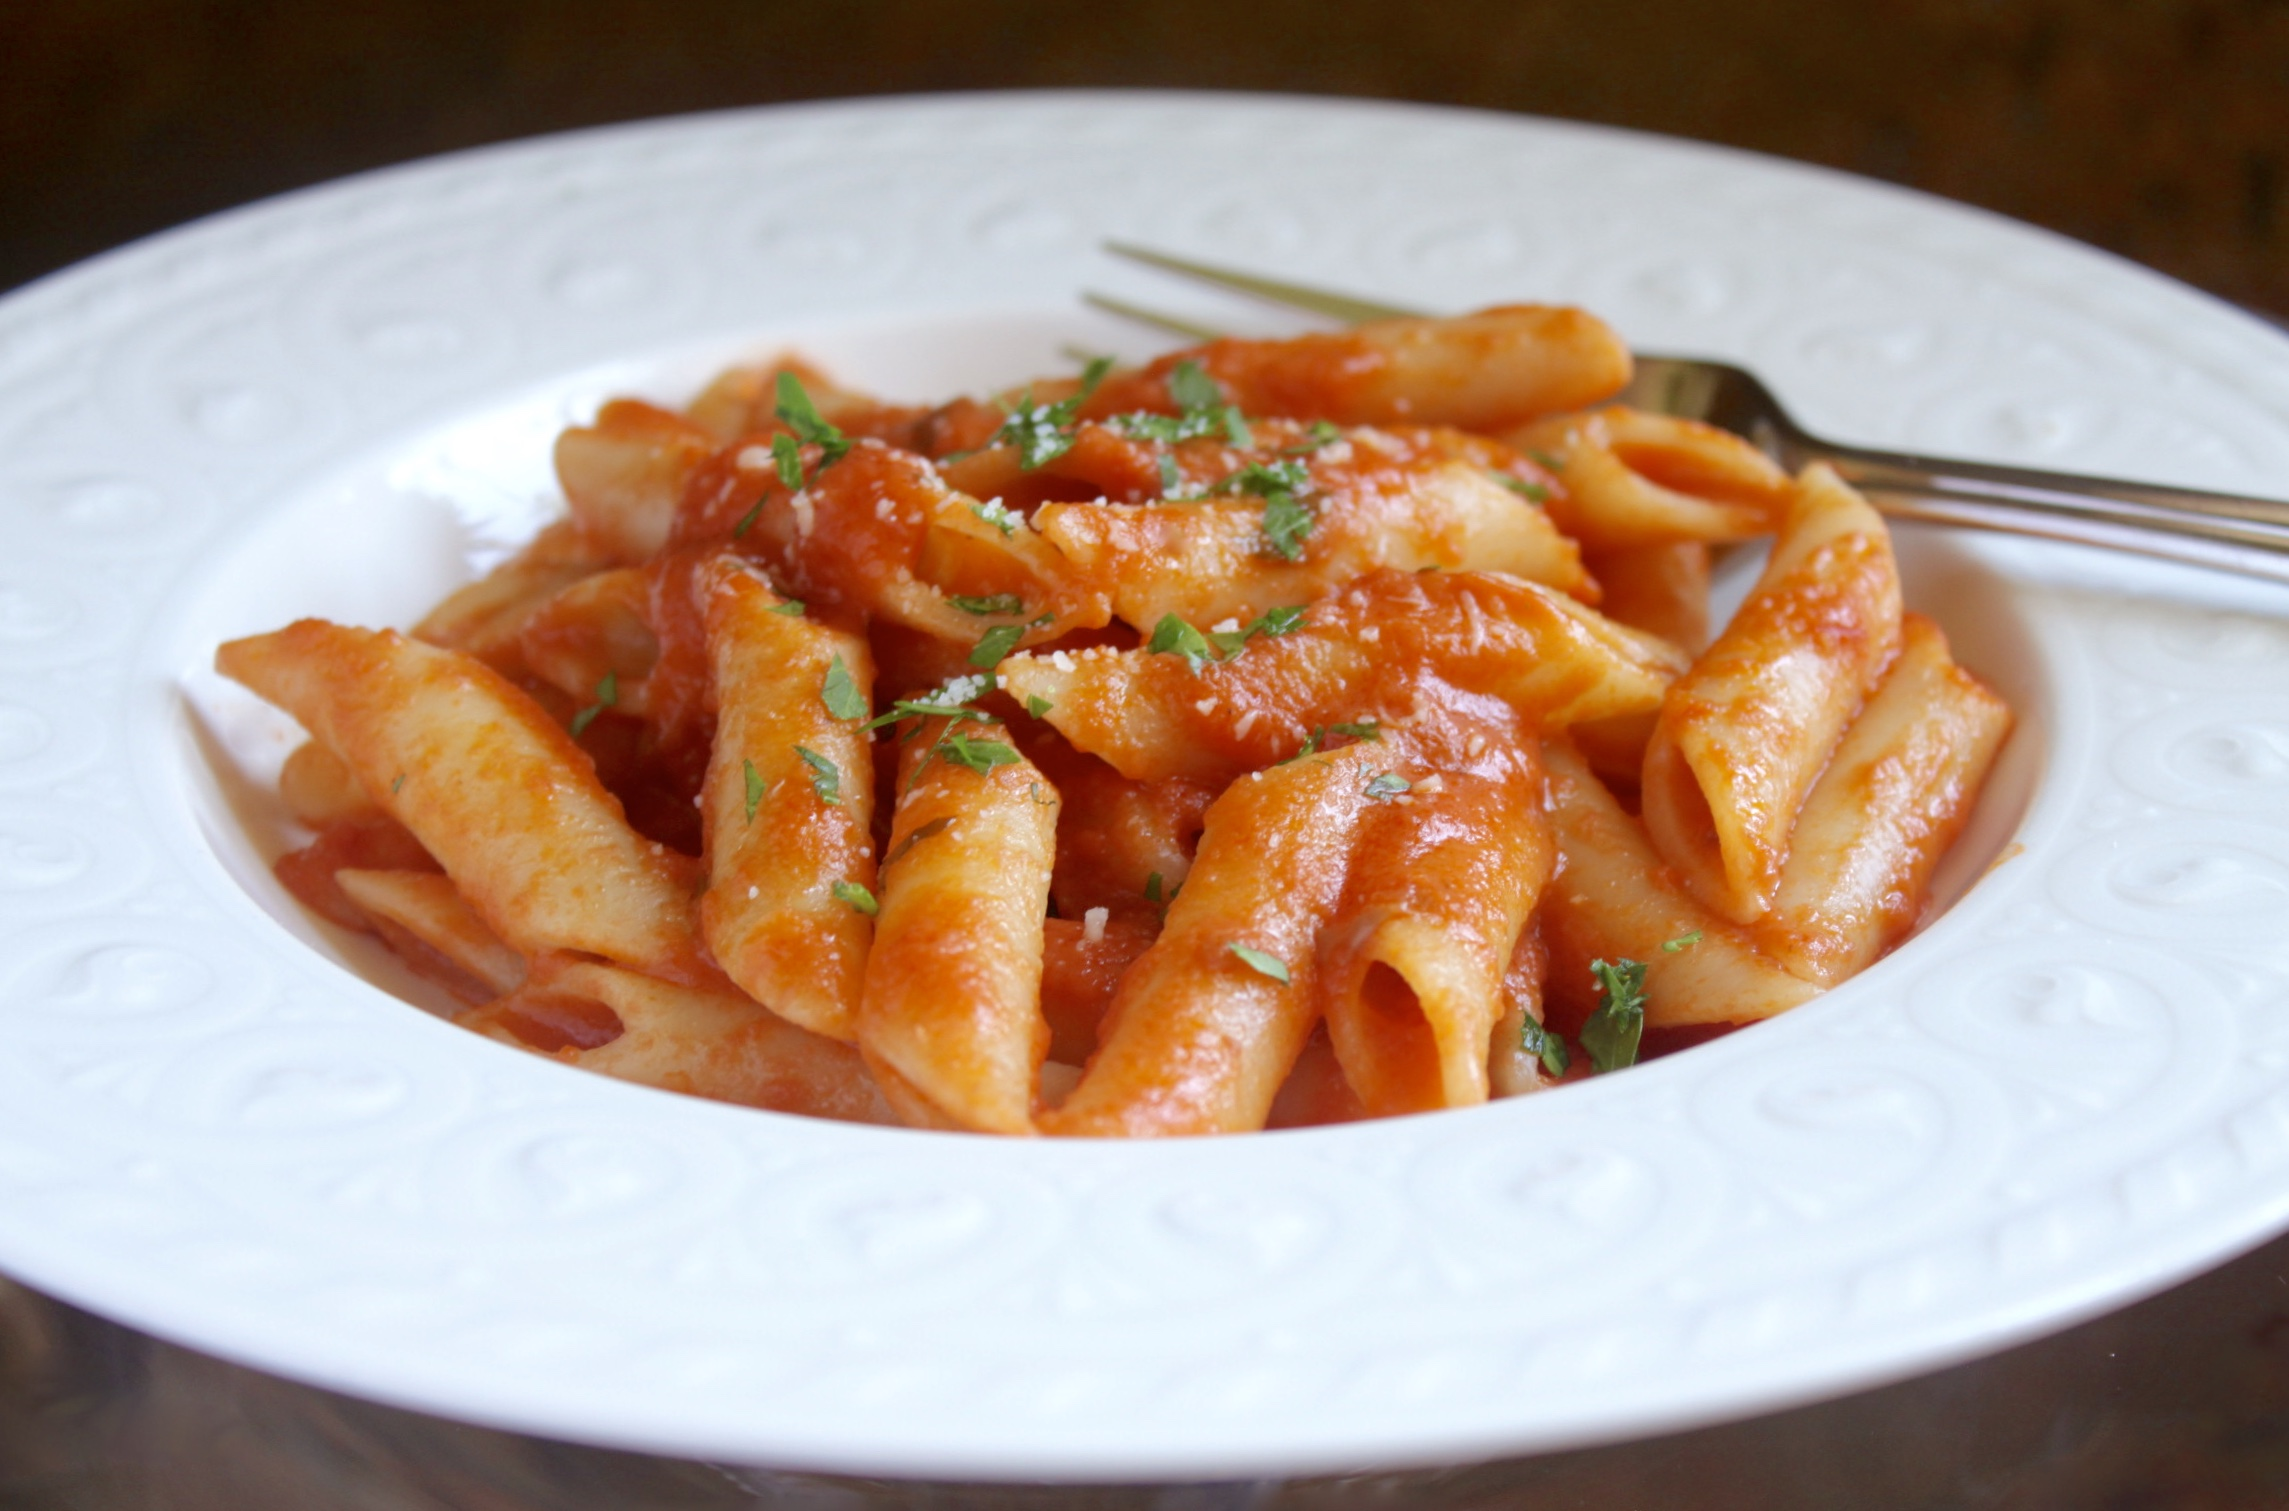 penne alla vodka with cheese and parsley